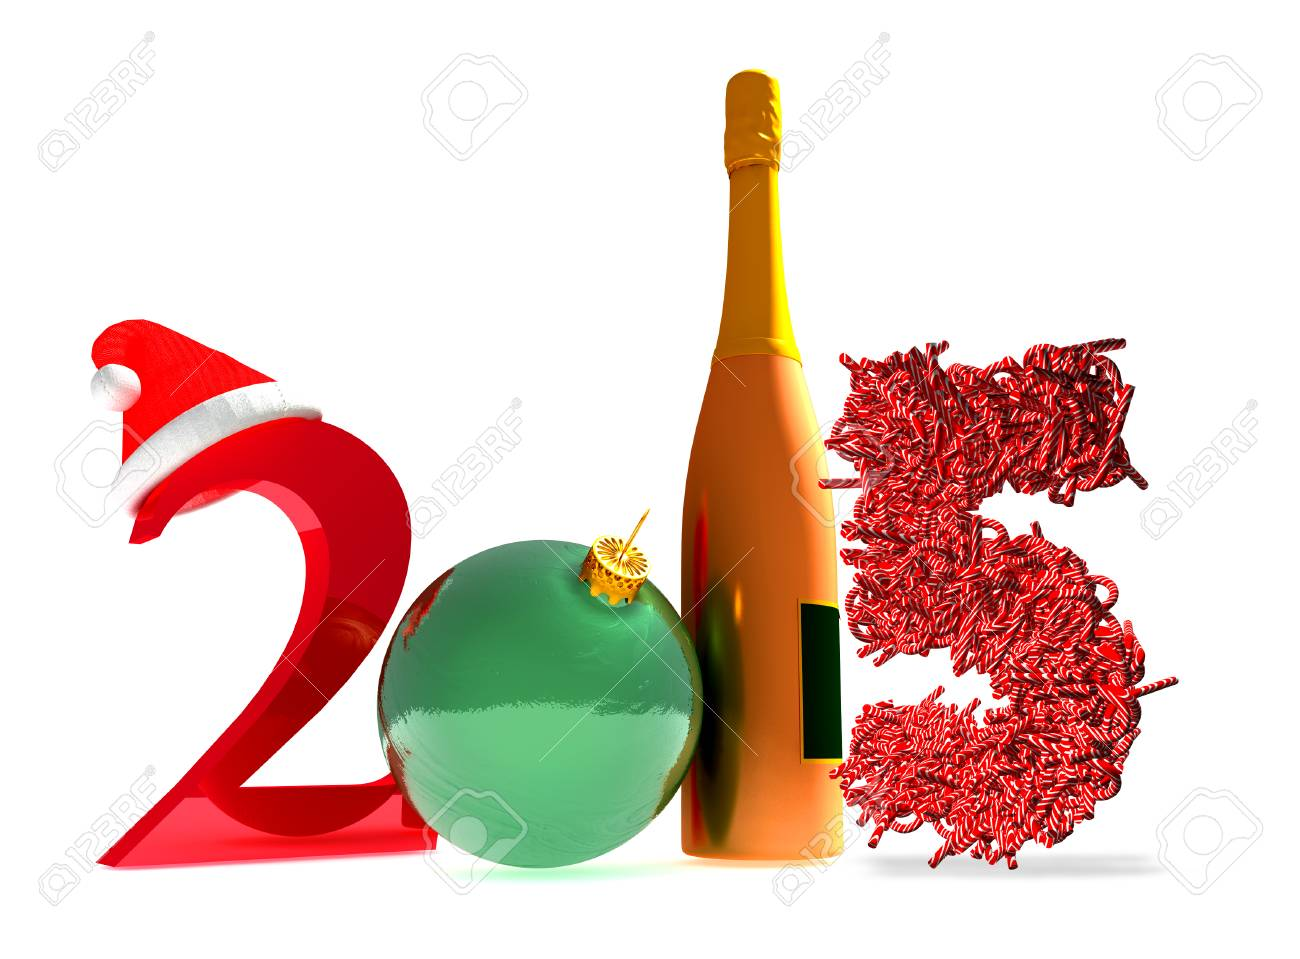 3d Rendering Of New Year 2015 And Happy New Year Greetings Stock